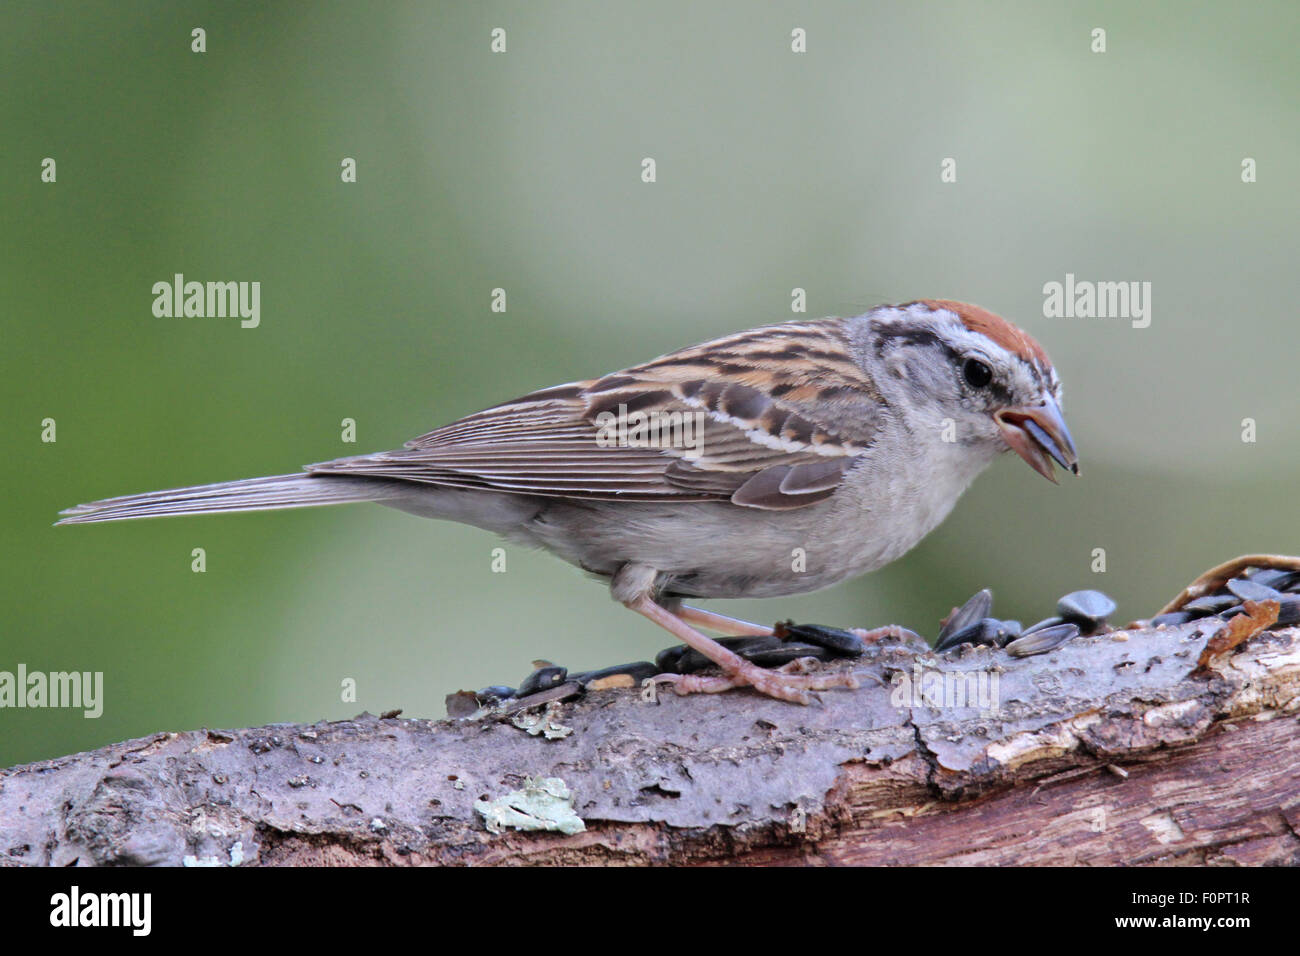 Chipping Sparrow (Spizella passerina) perching on a branch eating seeds. - Stock Image